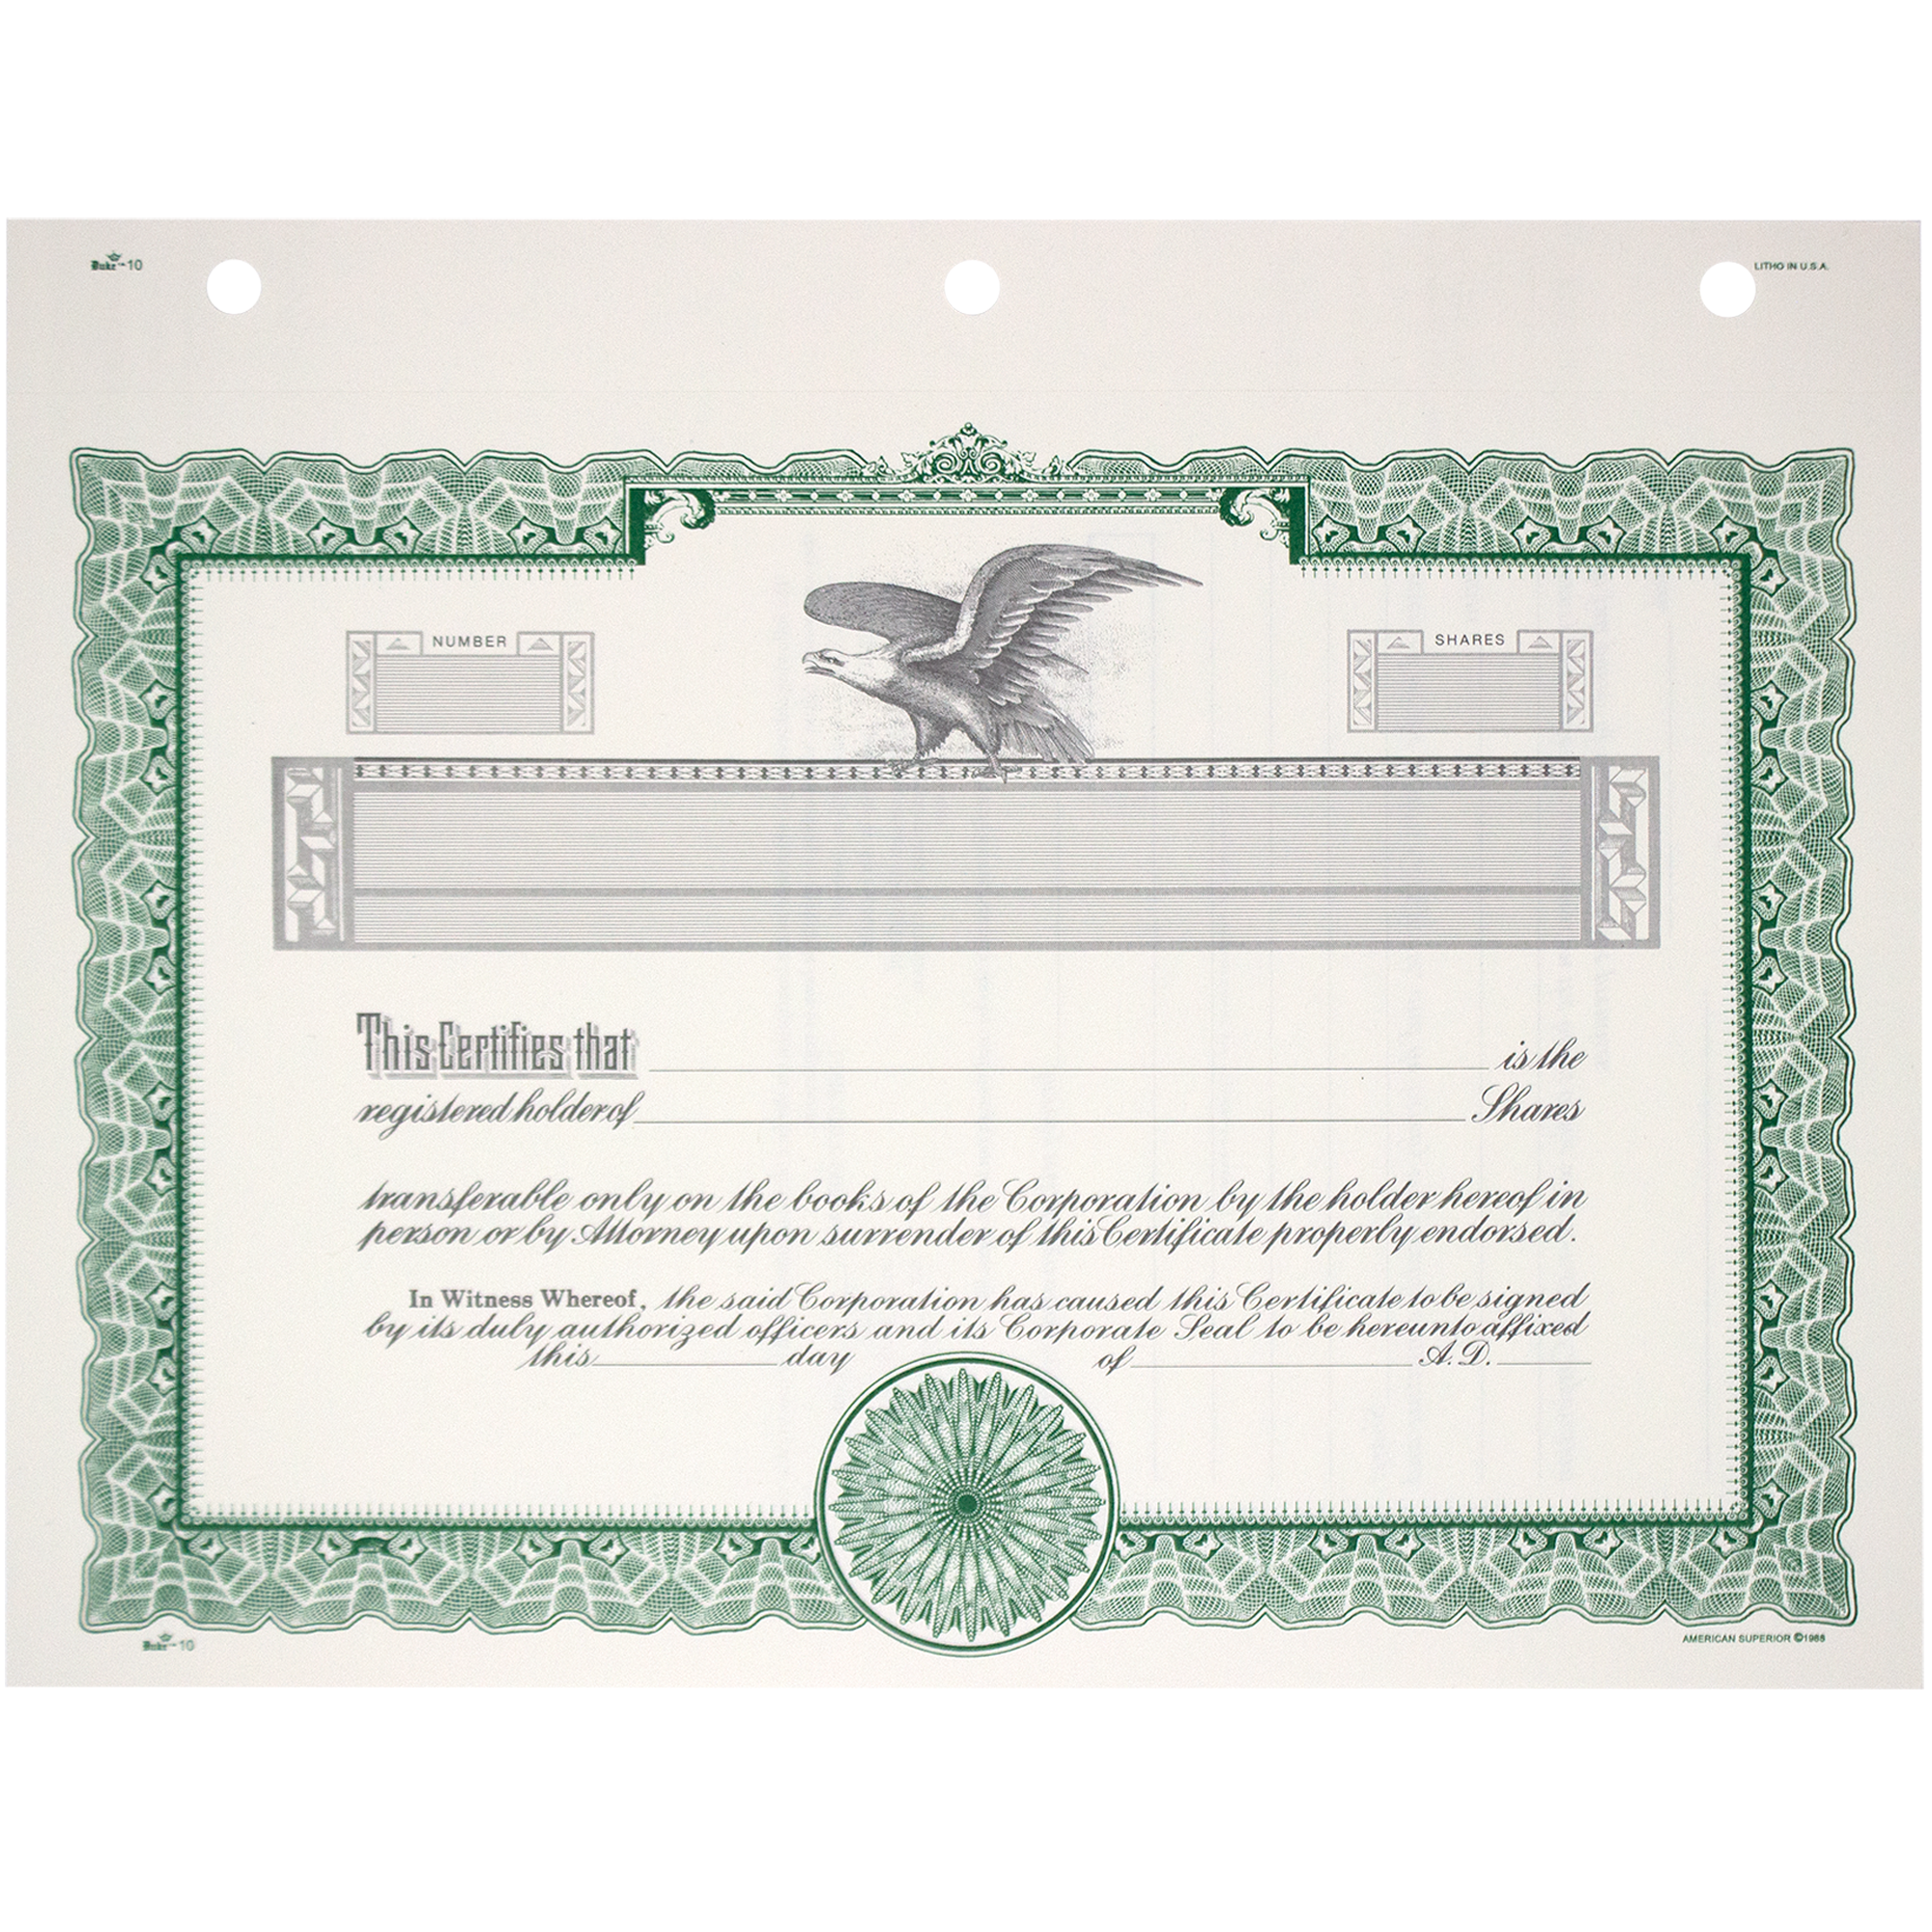 Duke 10 Blank Stock Certificates | Quantity of 20 or More